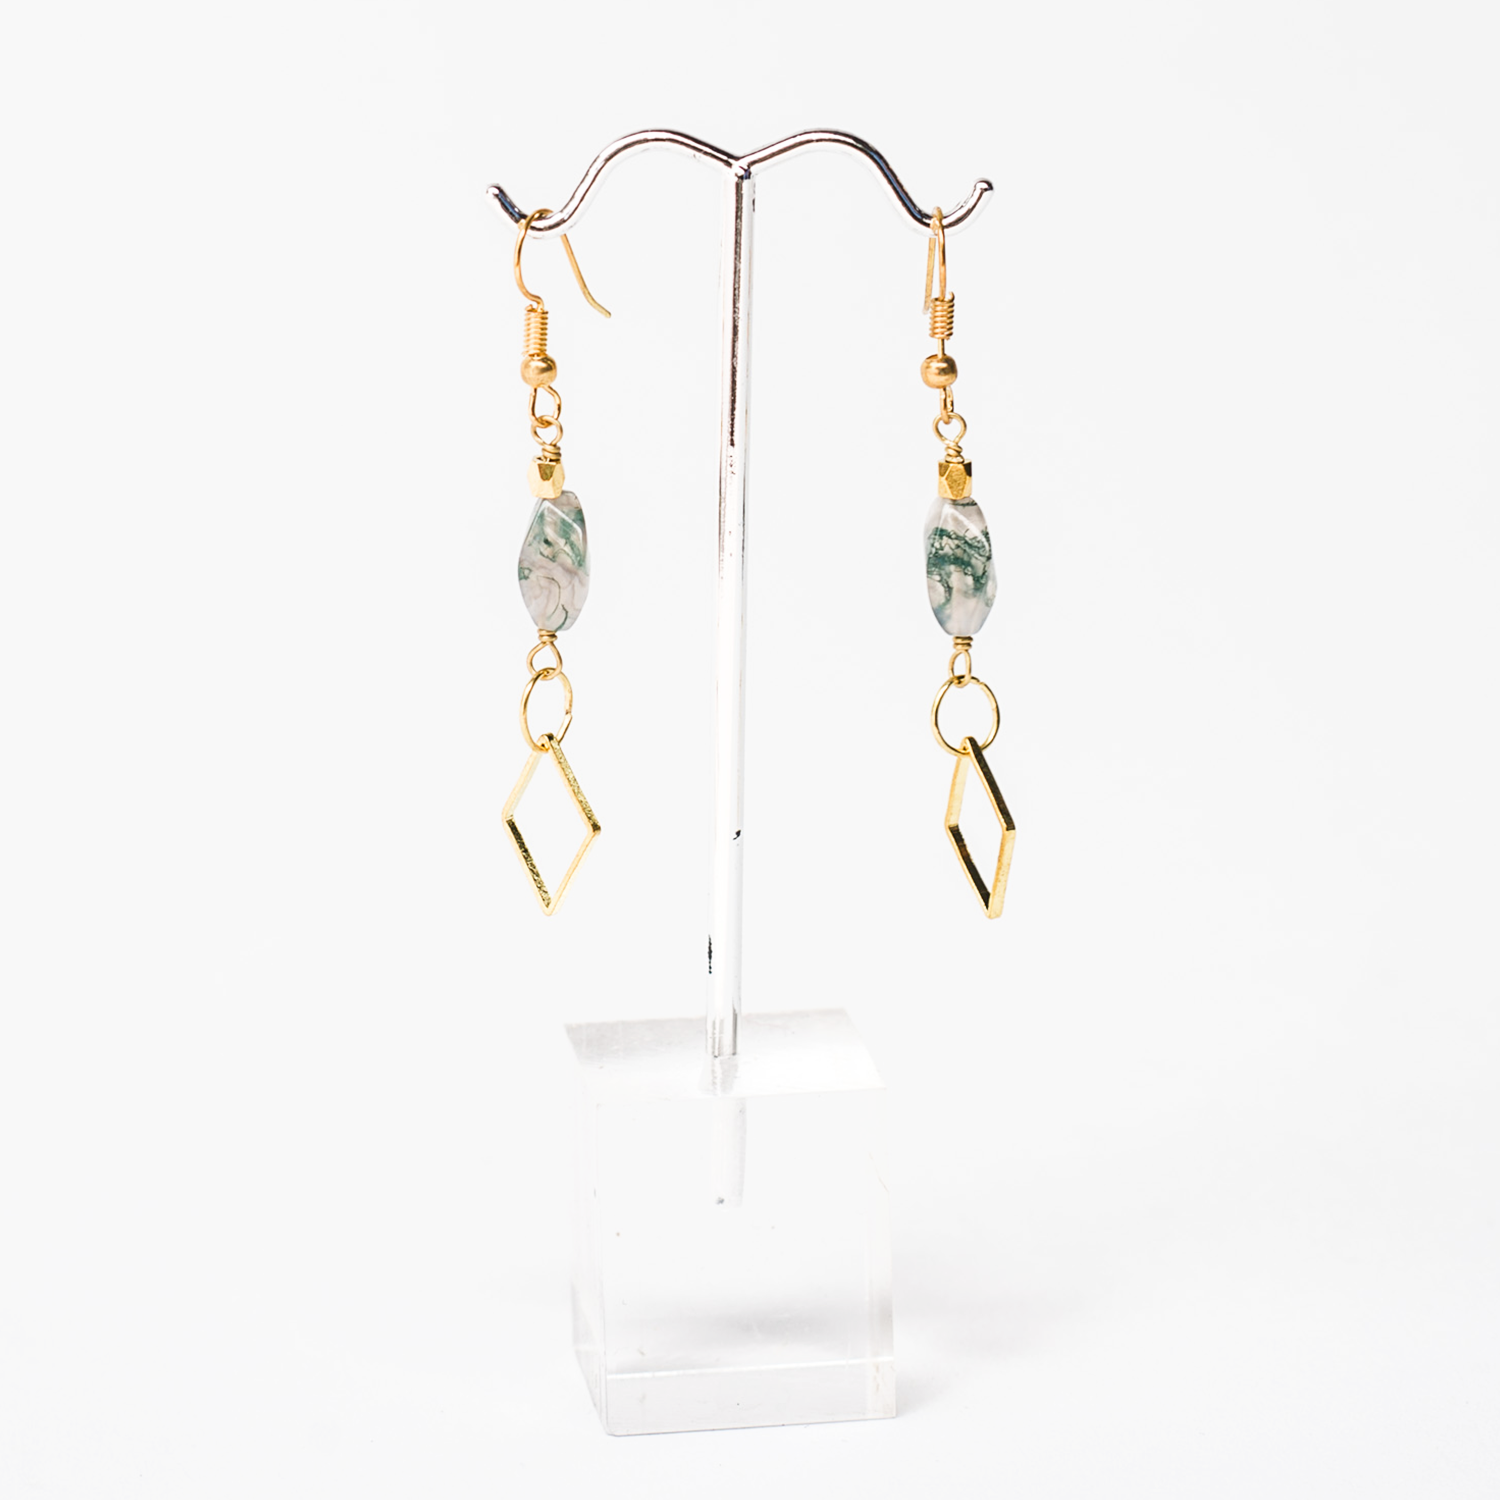 acbb2bf7d Perfect Cadence Earrings - Global Wonders Products of Hope